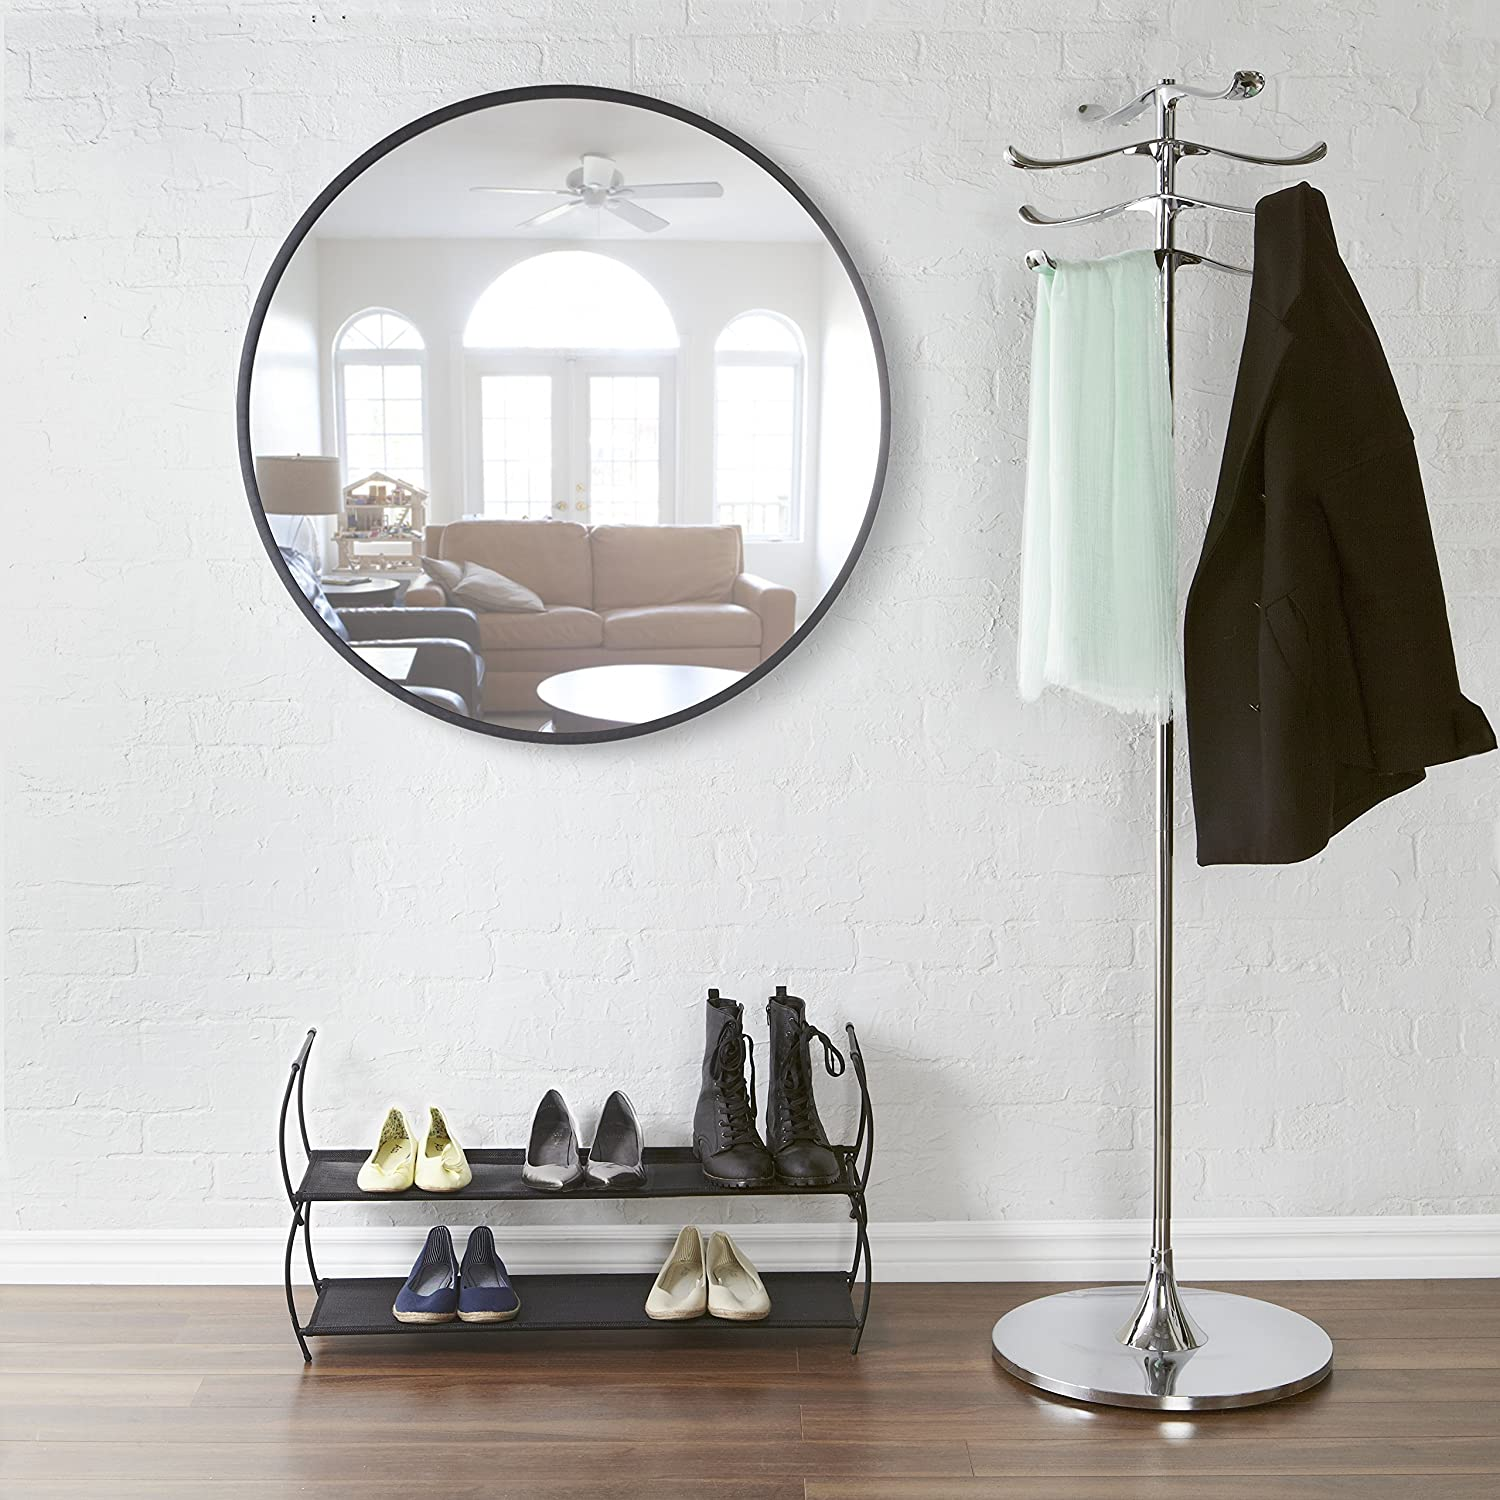 The 5 Best Wall Mirrors In All Shapes And Sizes: 2021 Buying Guide 2